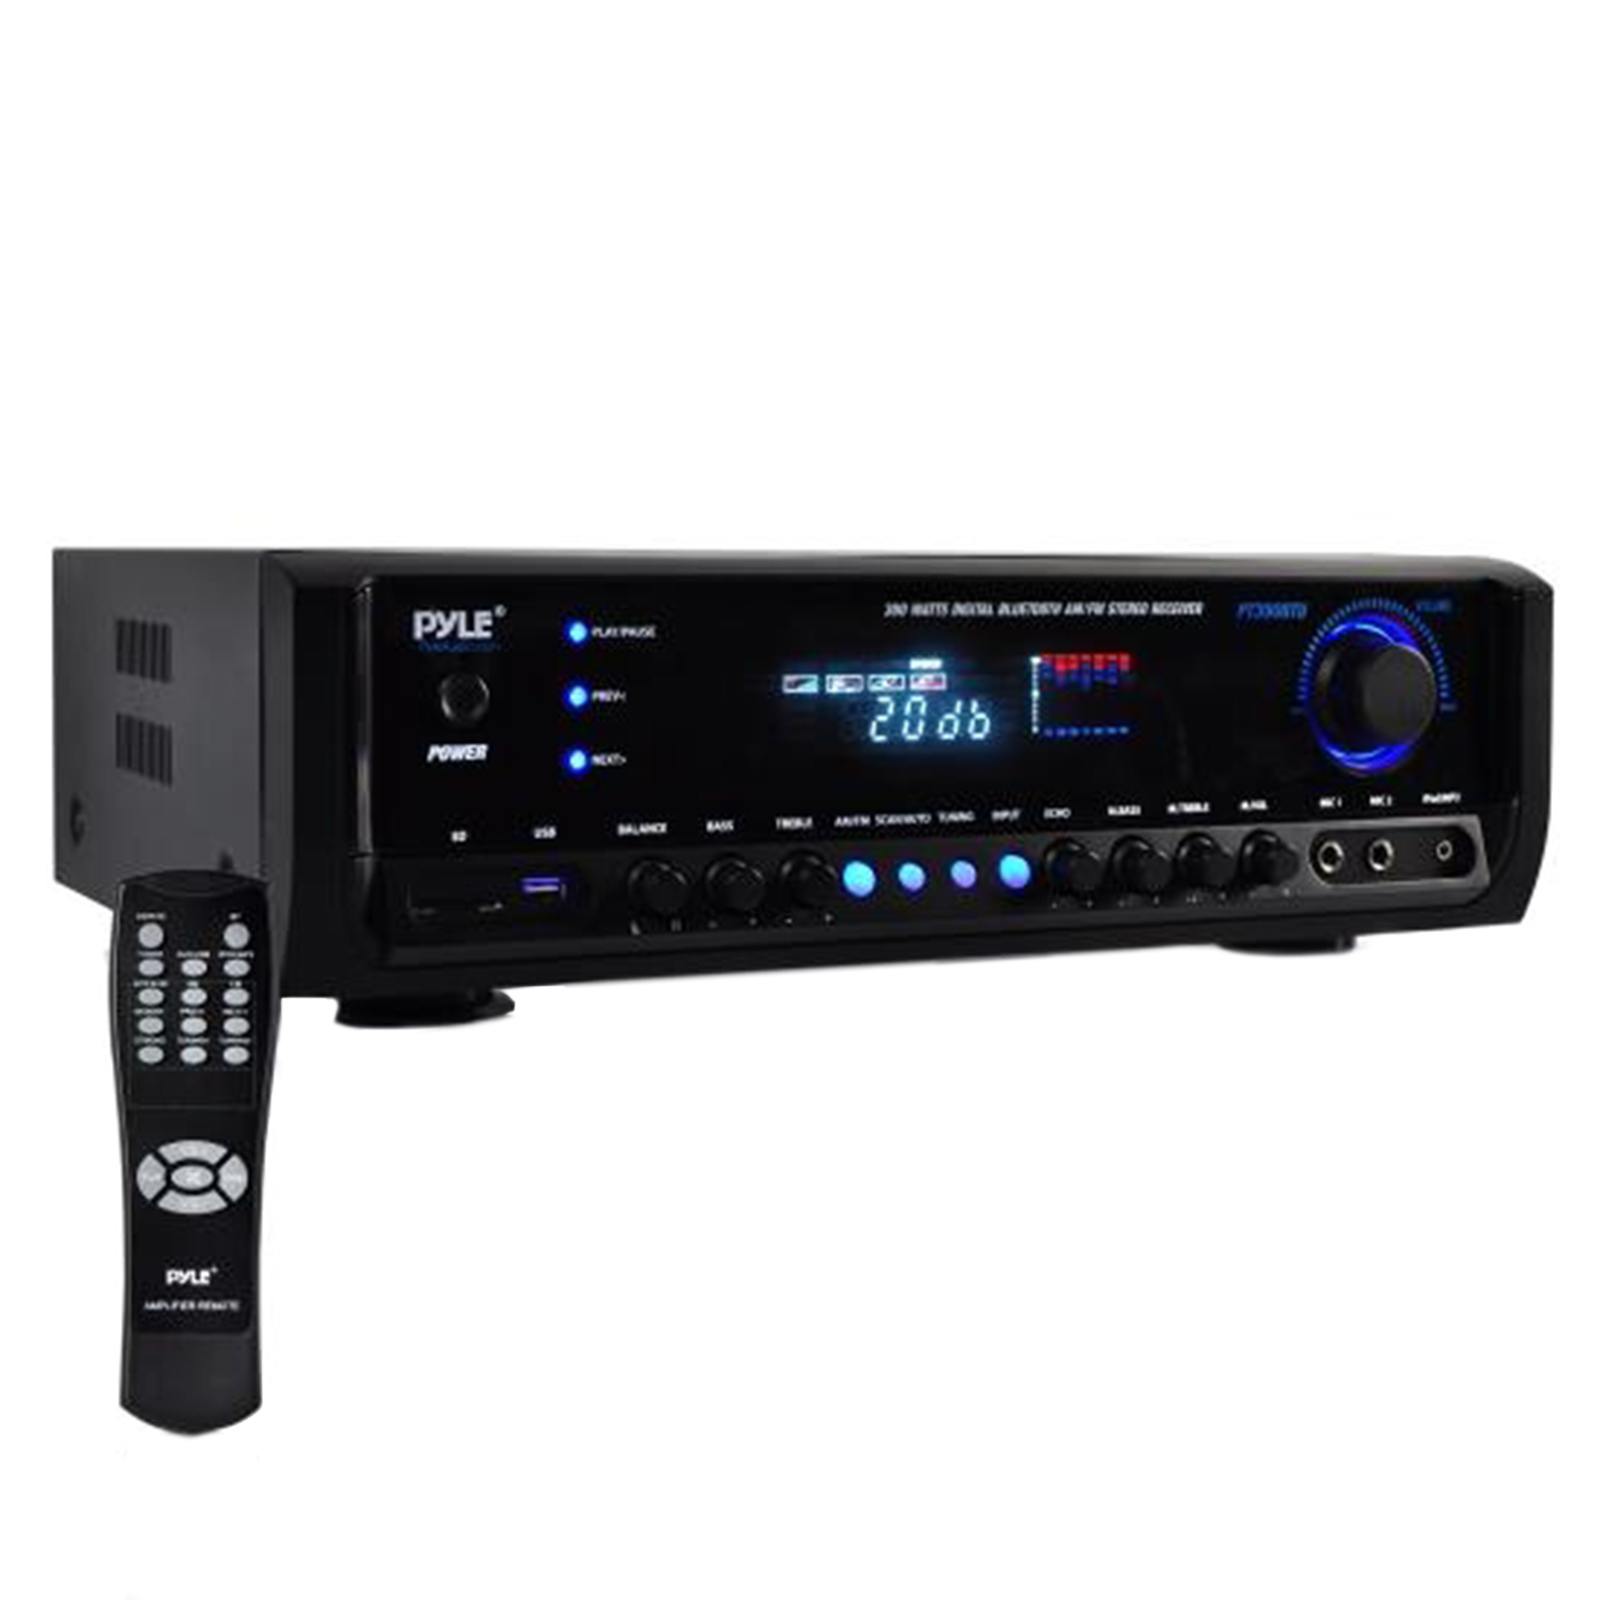 Home Theater BT Stereo Receiver, Aux (3.5mm) Input, MP3/USB/SD/AM/FM Radio, (2) Mic Inputs, 300 Watt